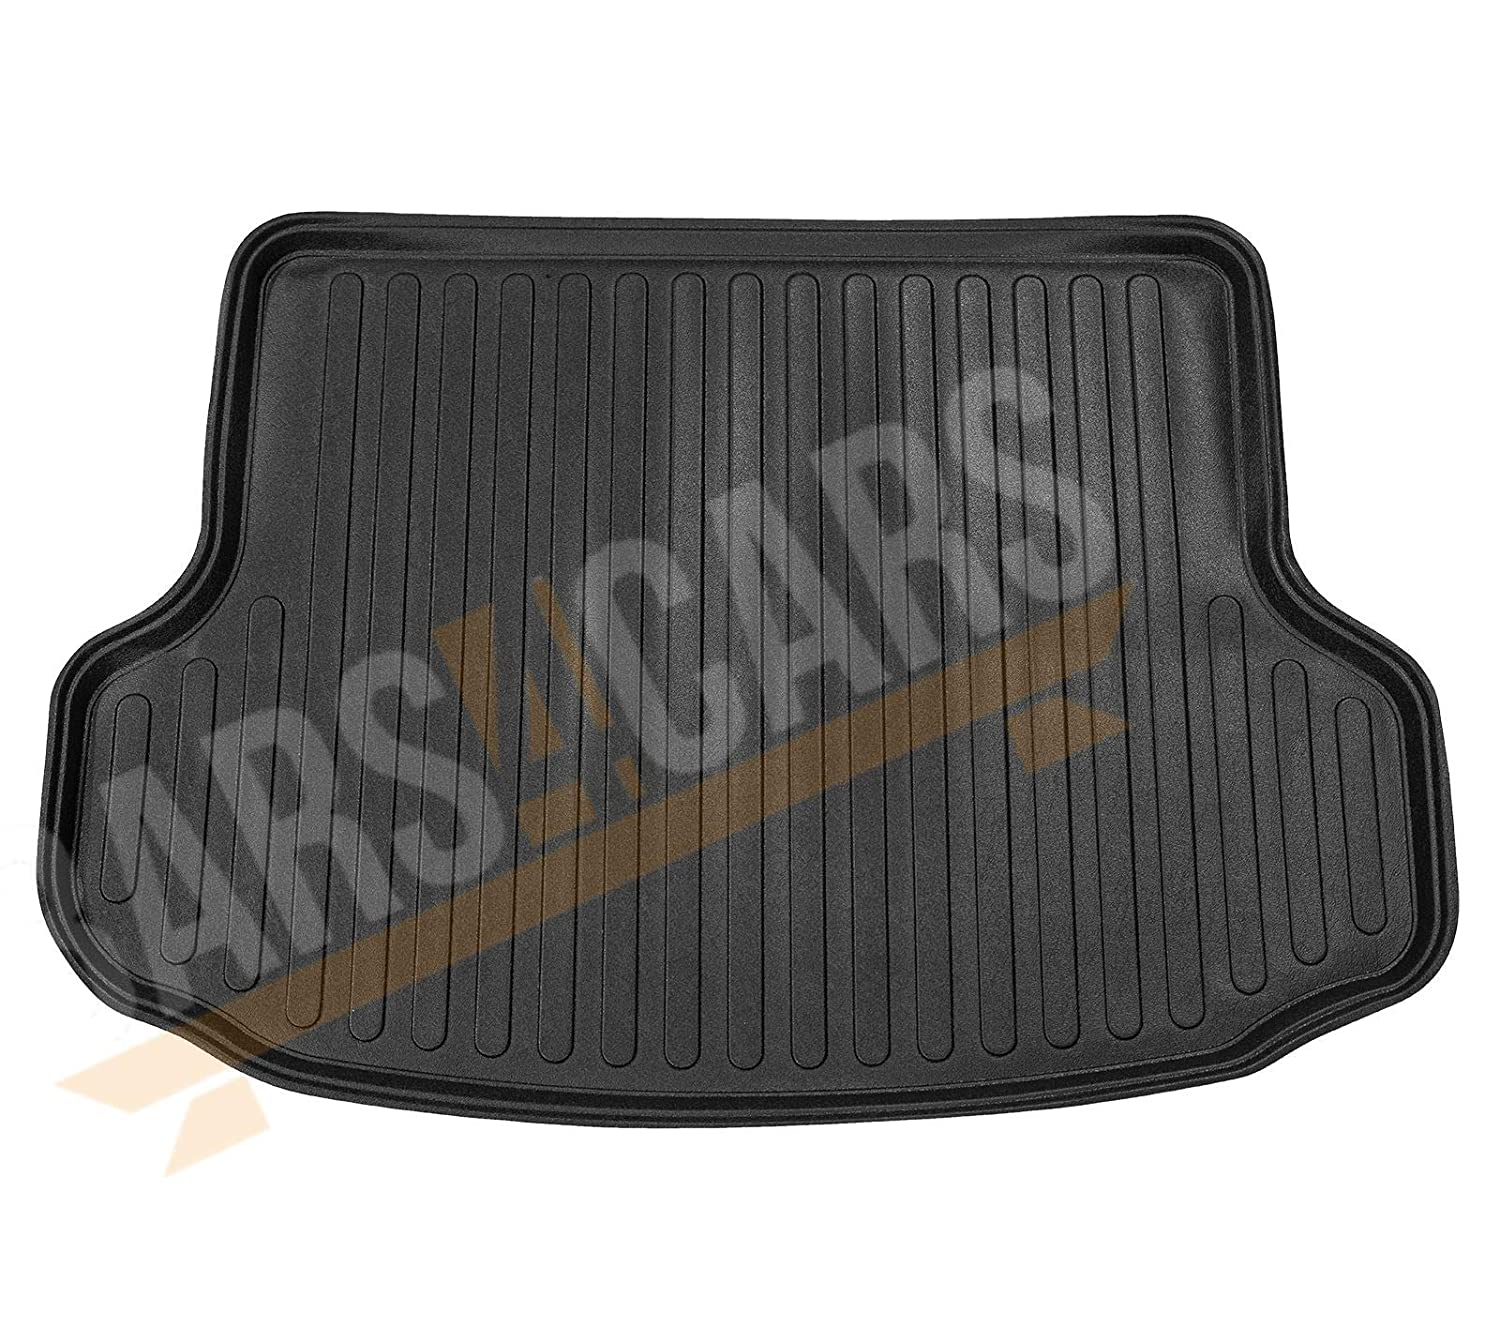 UKB4C Heavy Duty Tailored Fit Boot Liner Tray Car Mat For IX35 2010-2015